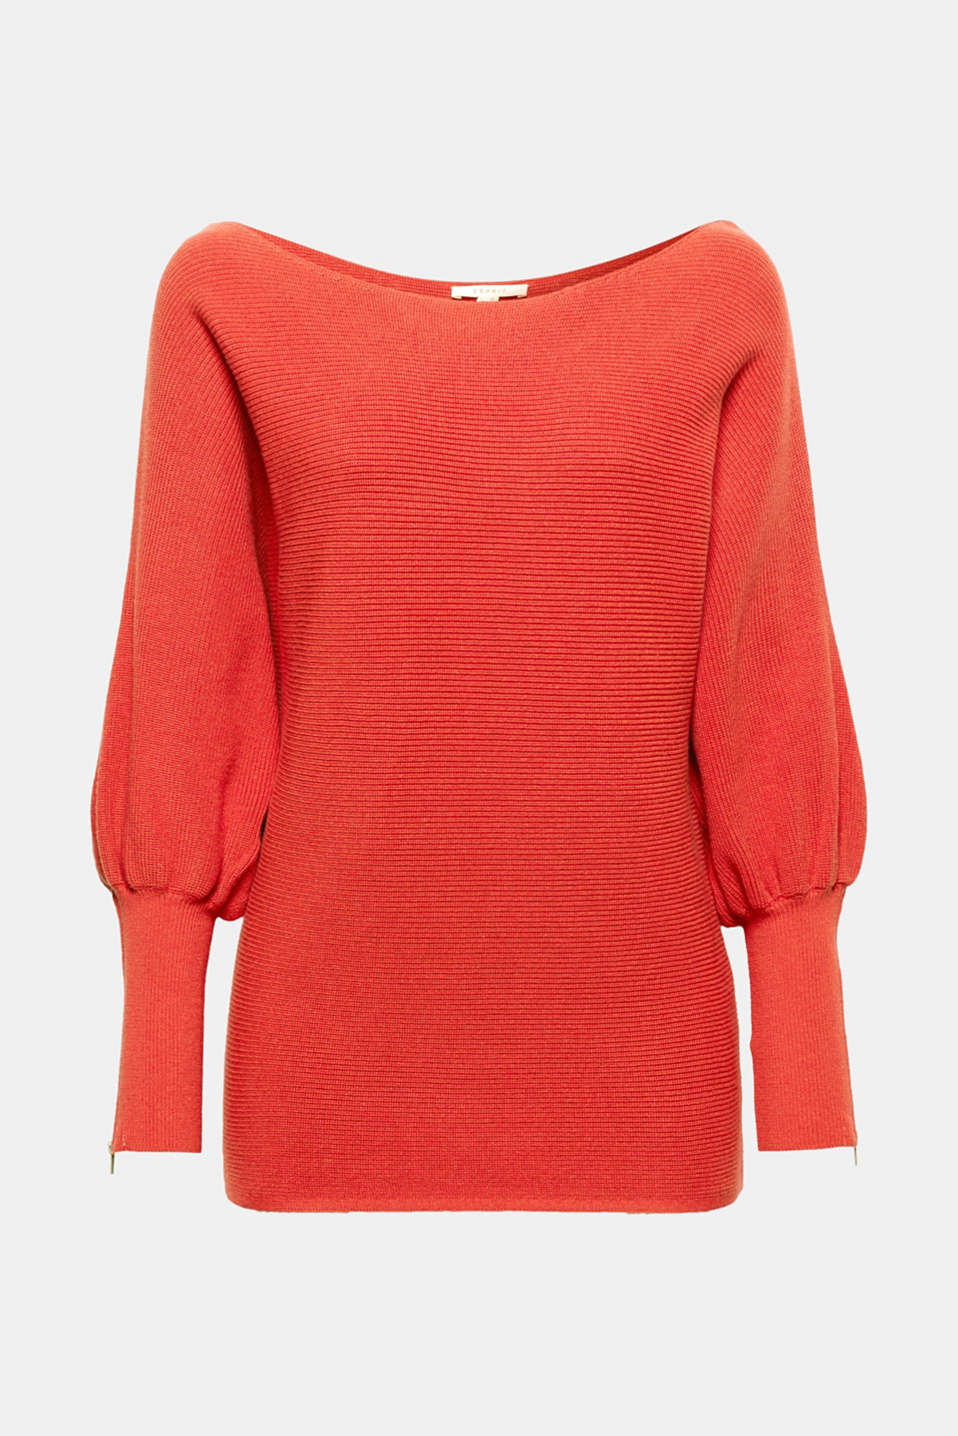 We love summer knitwear! The fine ribbed yarn and loose, oversized silhouette make this jumper a casual fave.